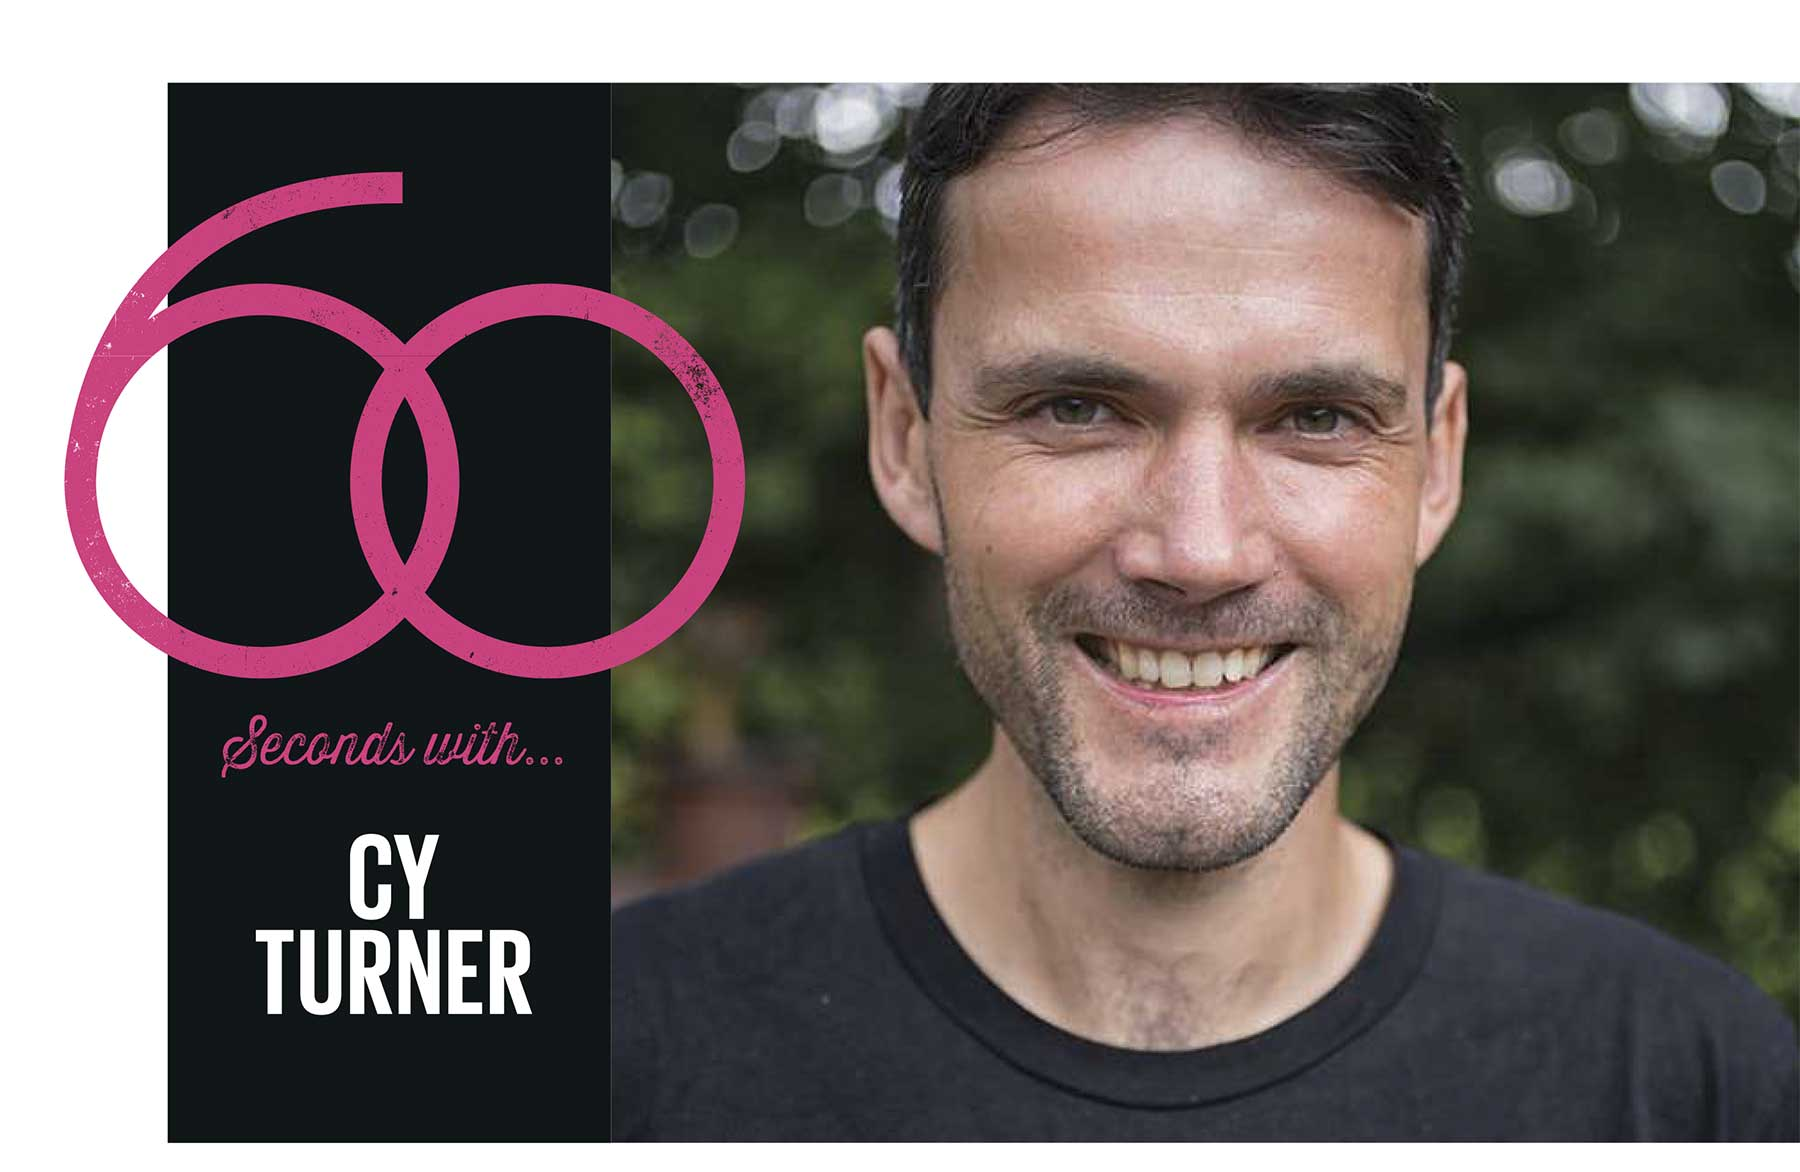 60 Seconds with Cy Turner